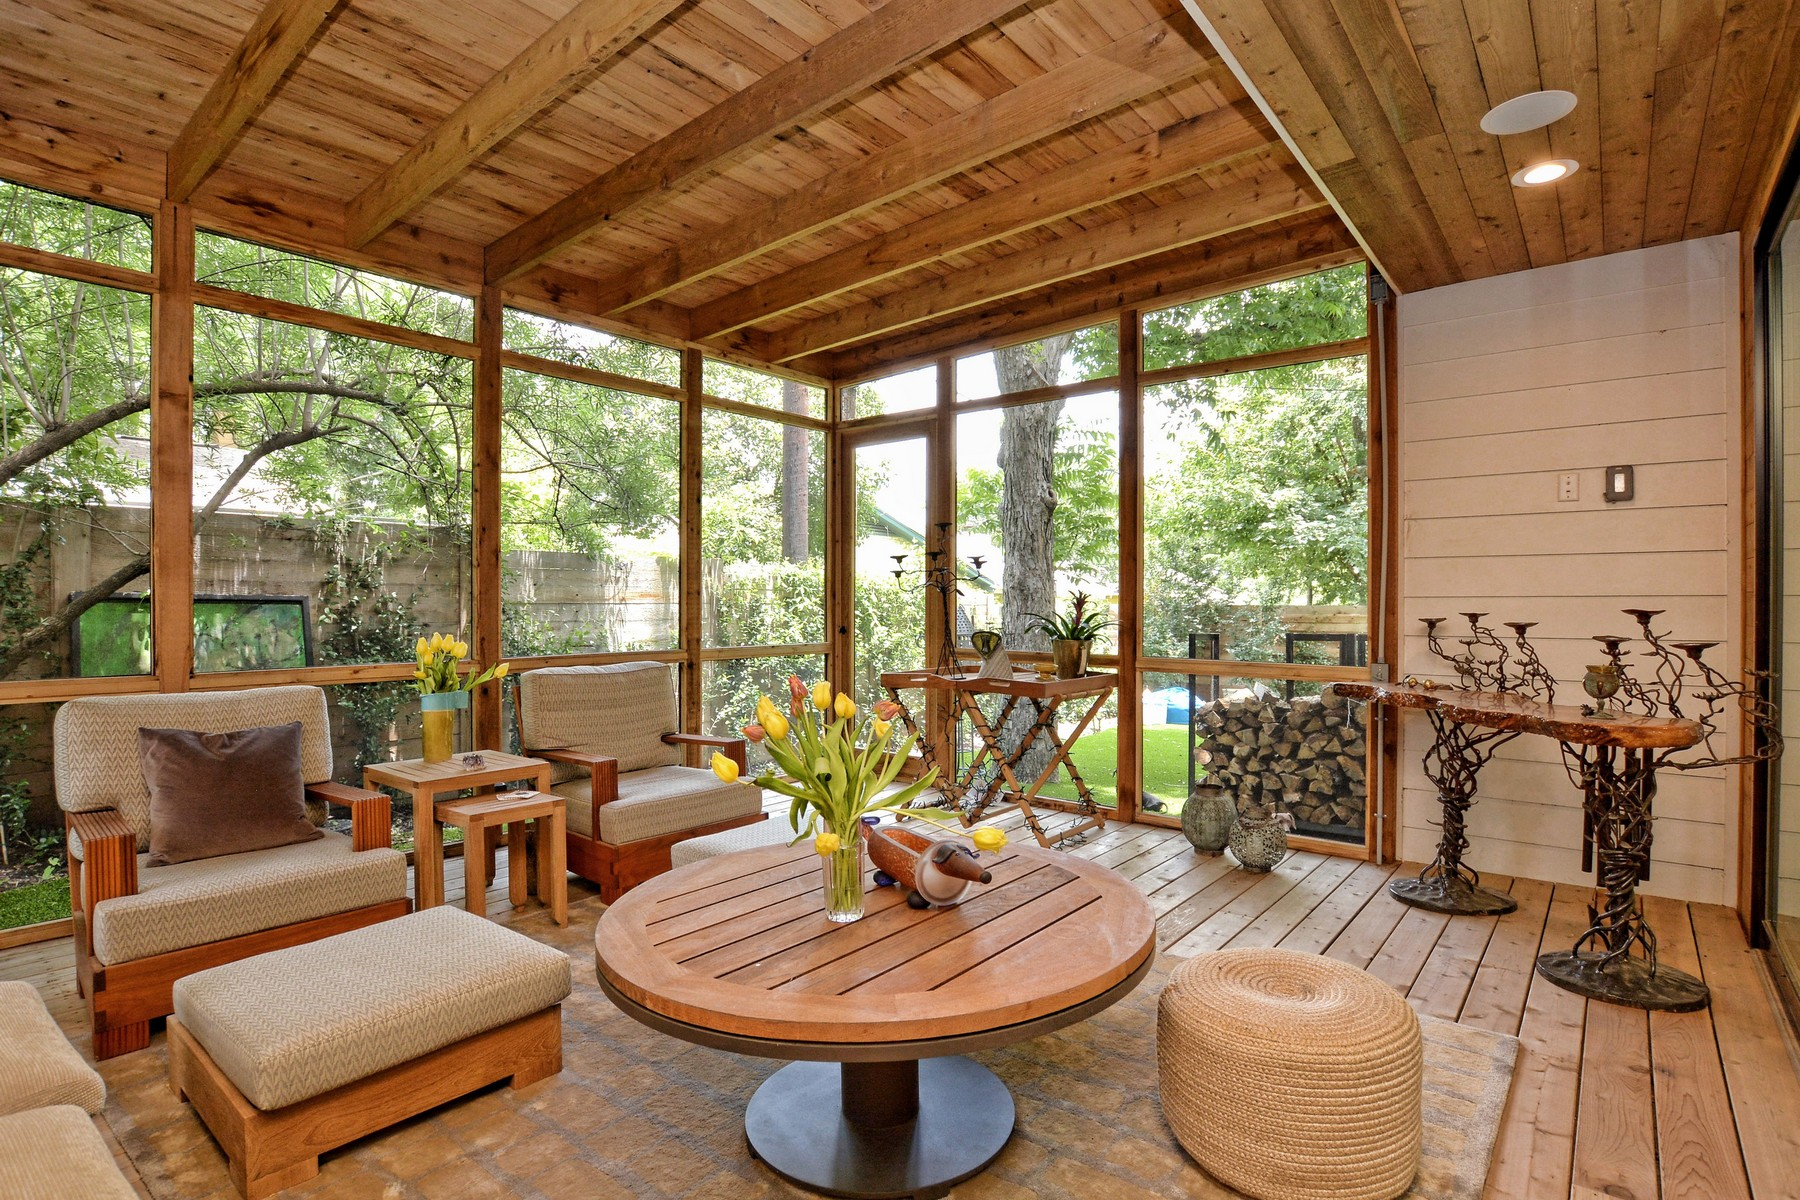 Additional photo for property listing at Custom Contemporary in Zilker Neighborhood 2012 Rabb Glen St A Austin, Texas 78704 Estados Unidos